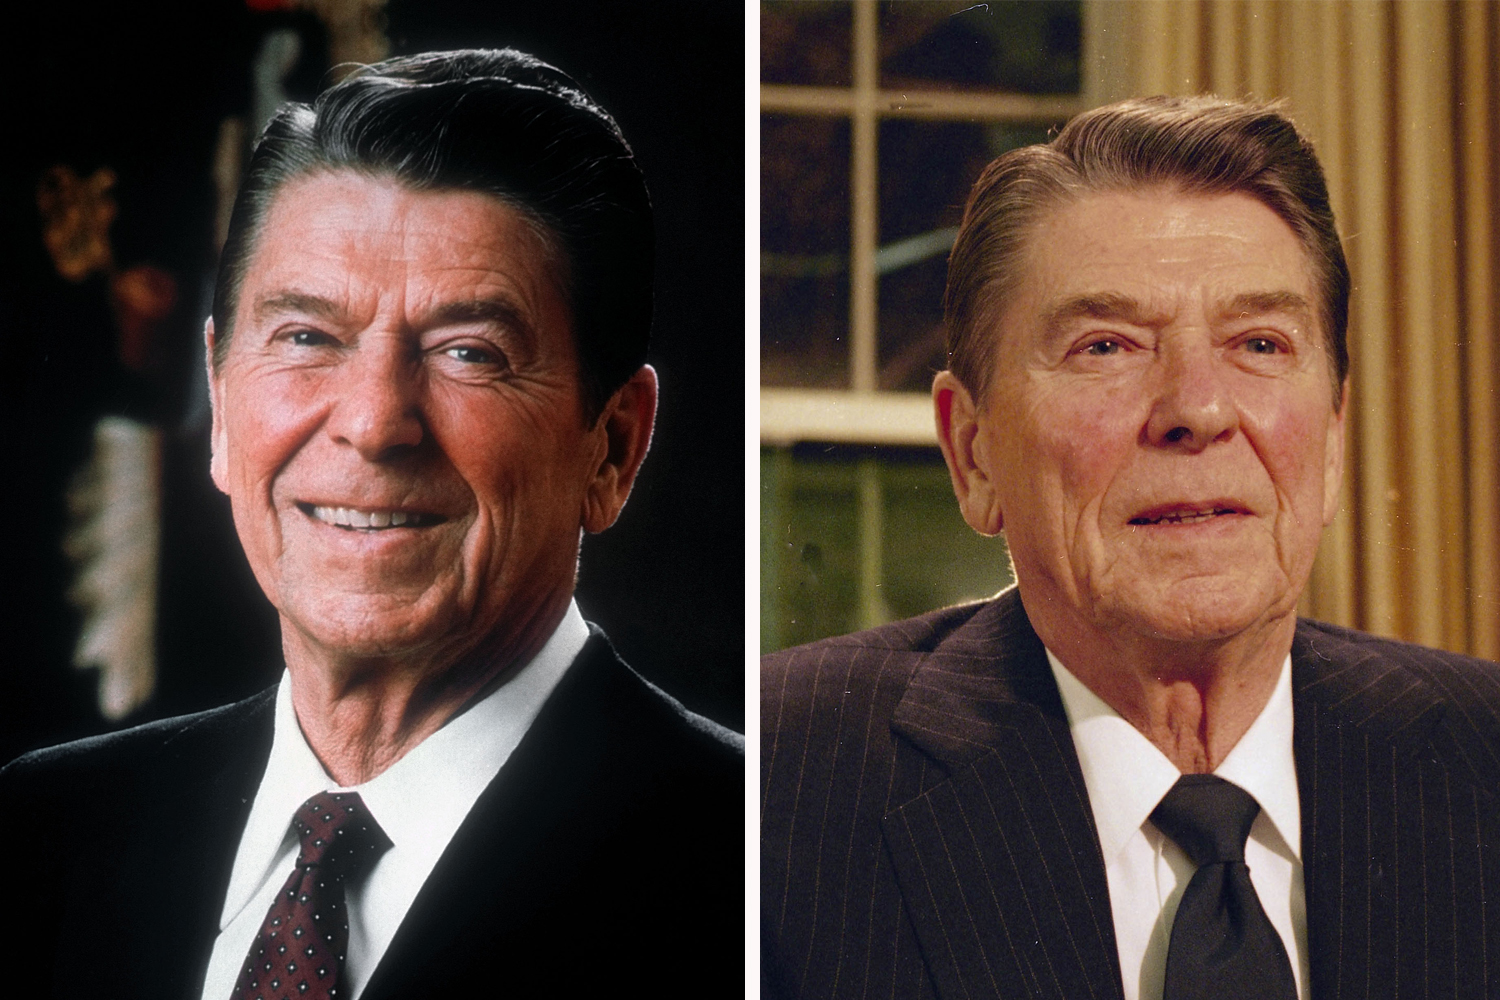 President Ronald Reagan posed for an official White House photo during his first year in office (1981, left). On right, he spoke to the nation early in his second term, in February 1986.